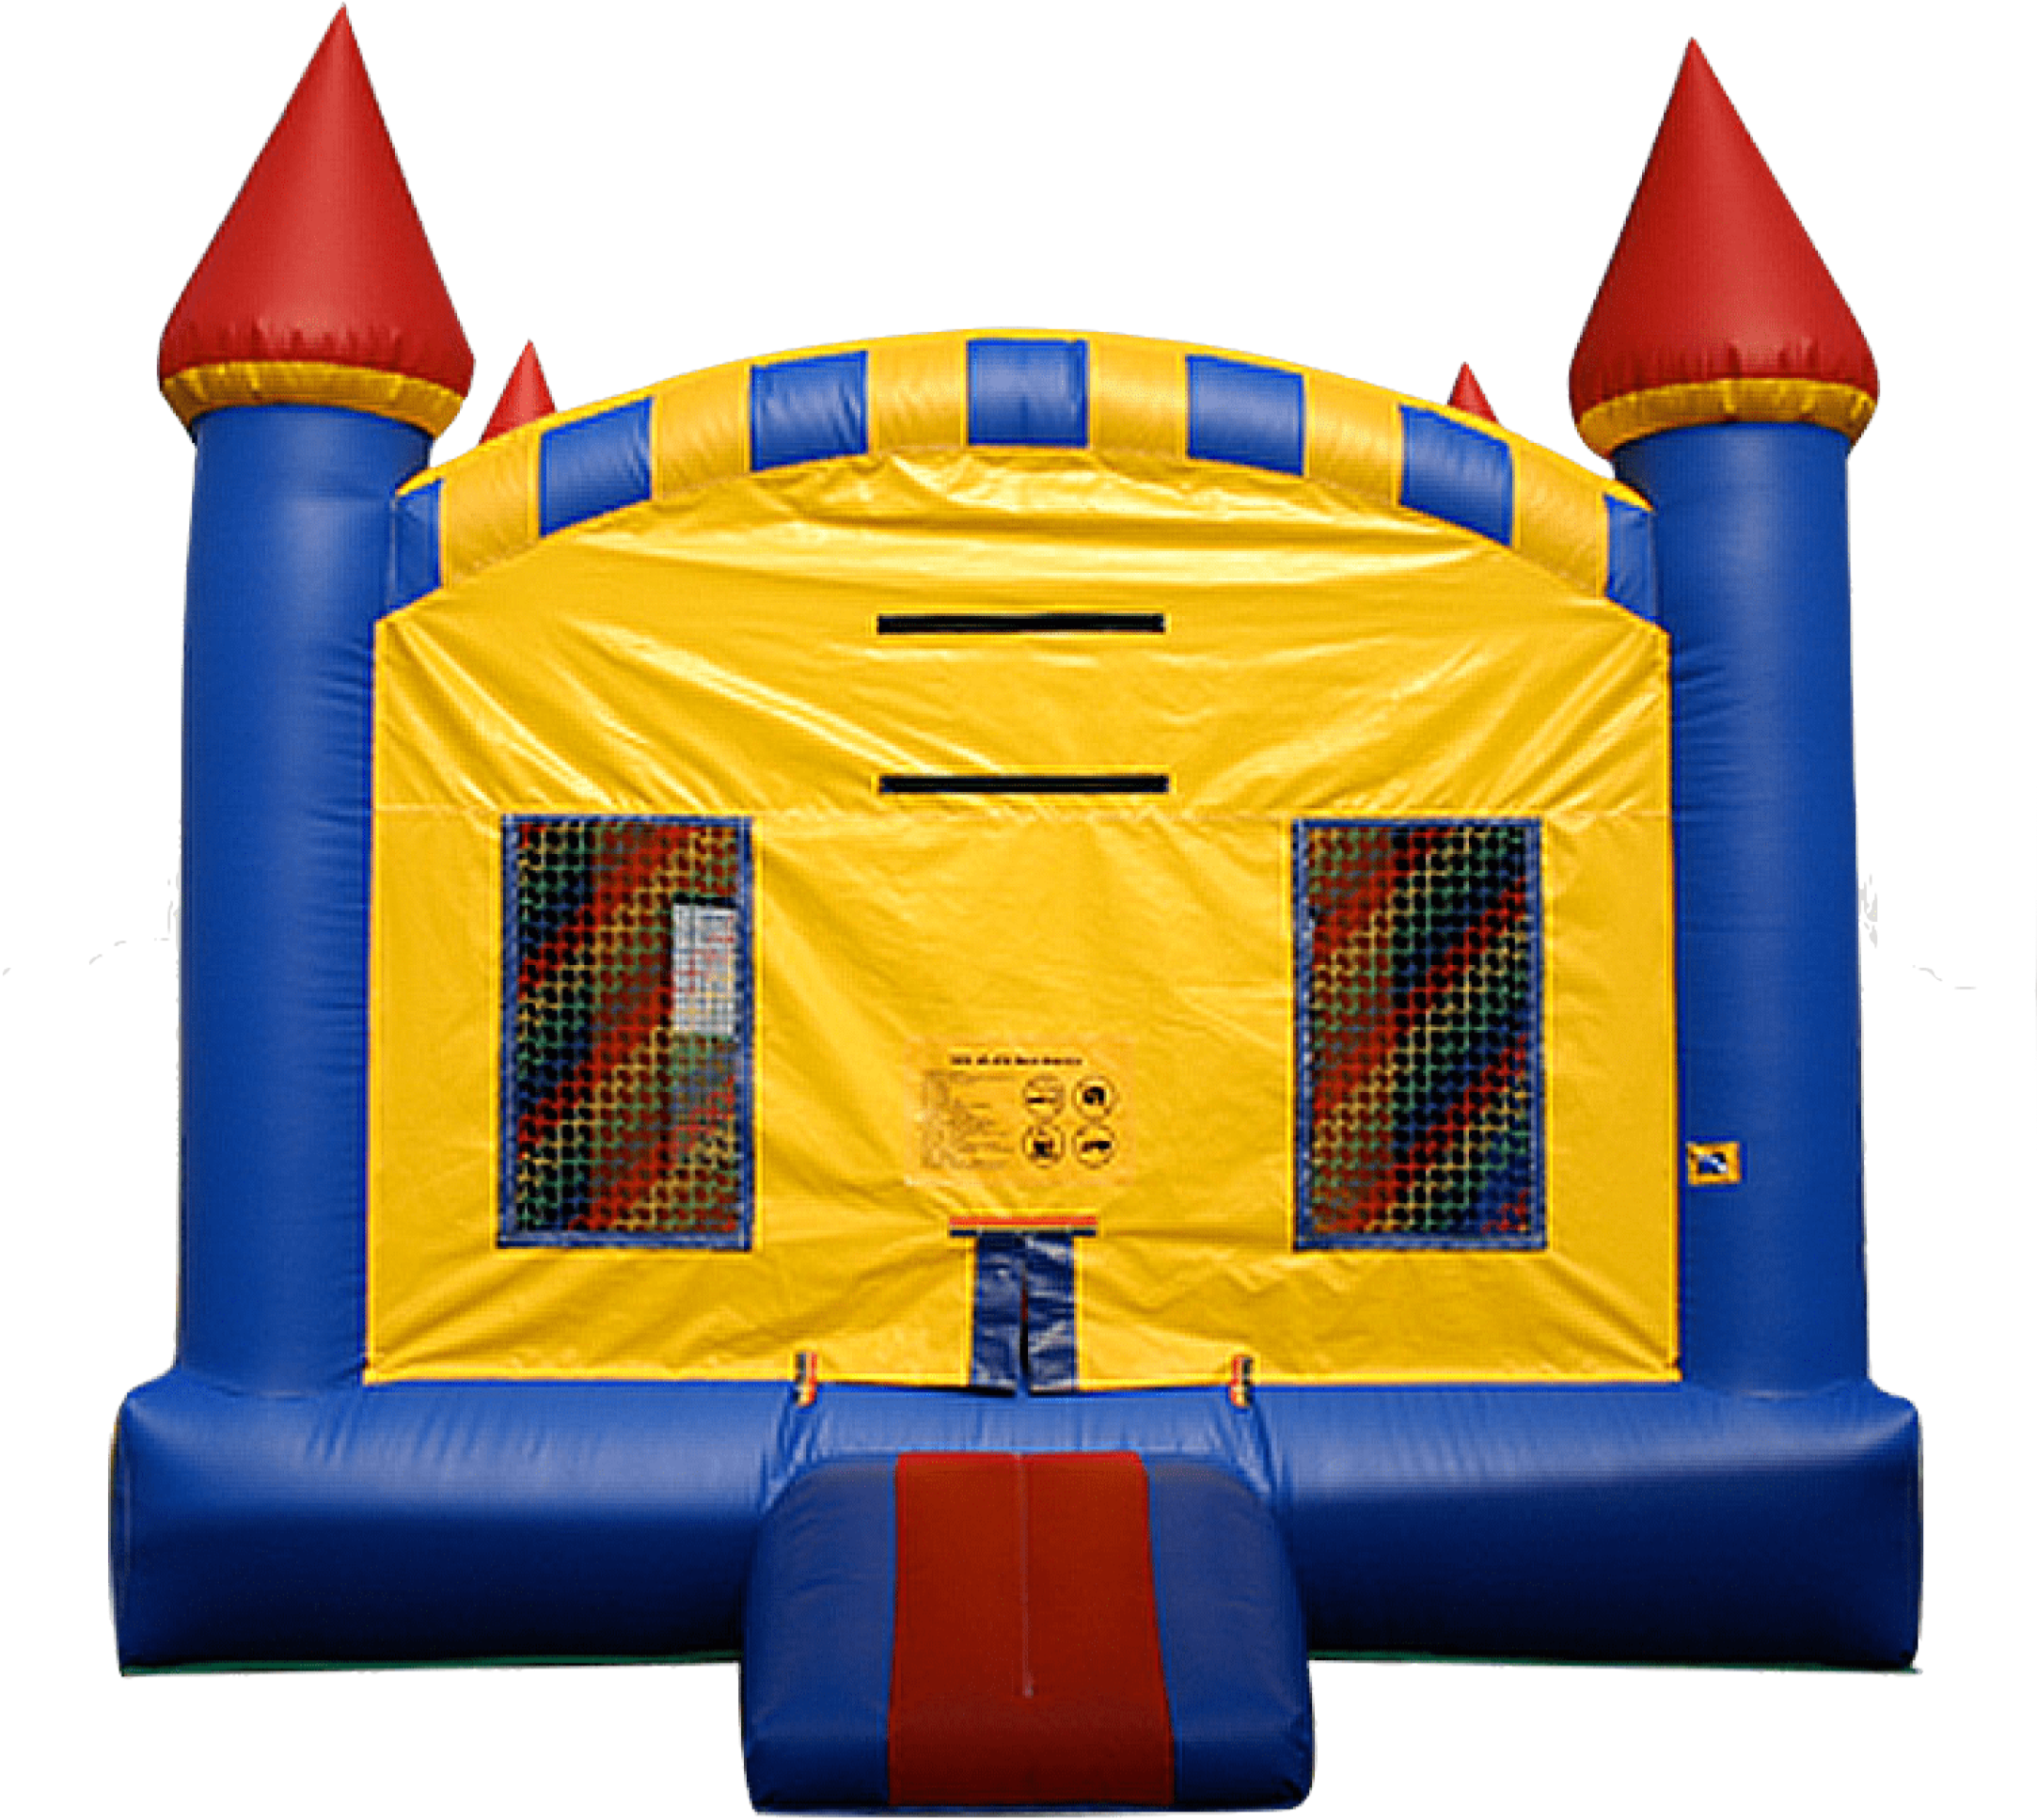 Are You Having A Small Party And Looking For A Traditional - Bounce House Transparent (2500x2500), Png Download